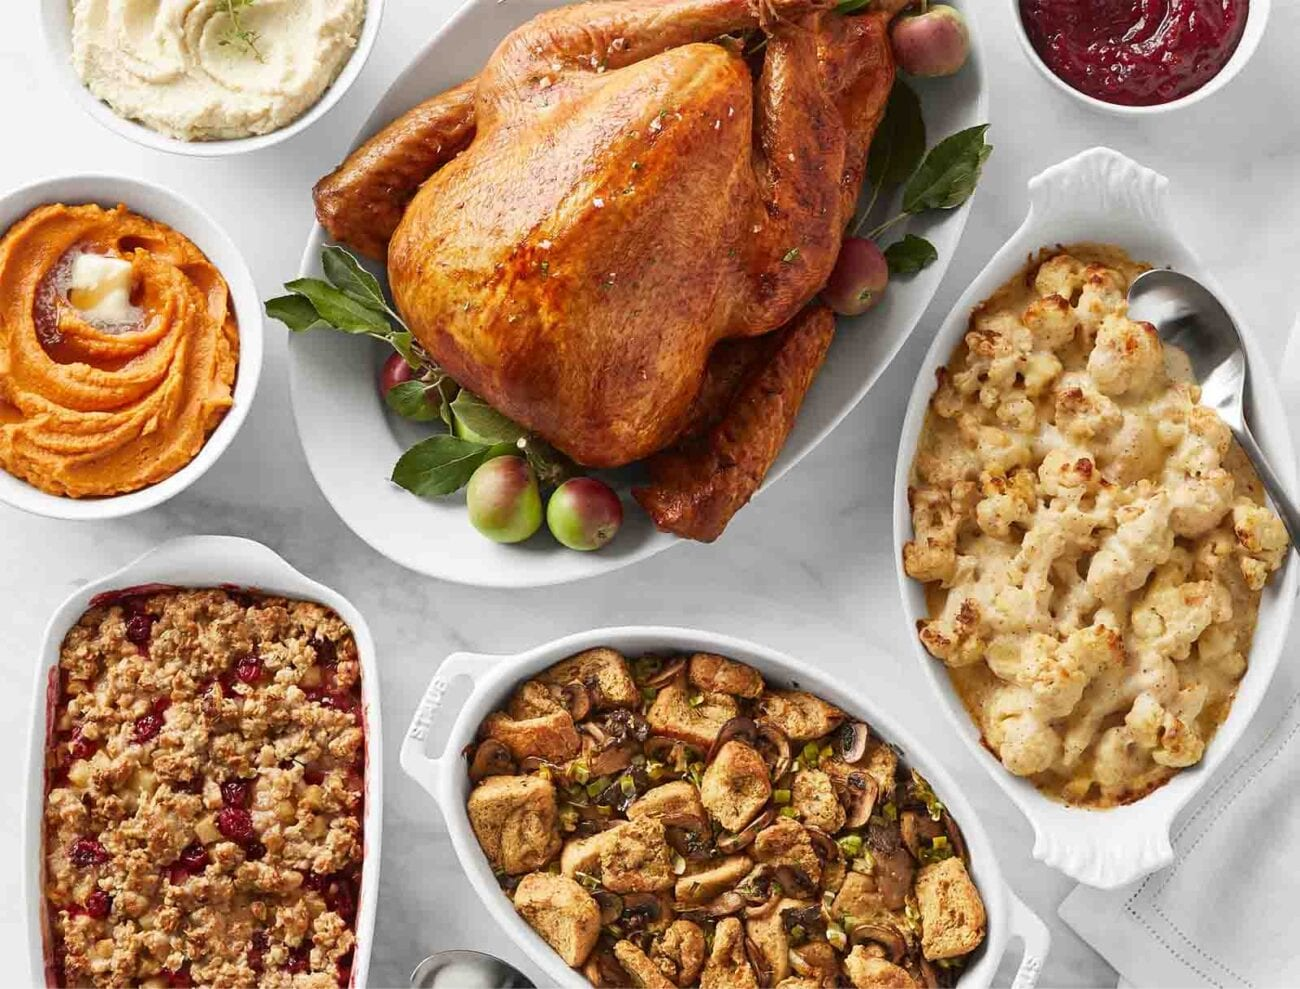 If you're worried you can't afford a traditional Thanksgiving dinner this year, Walmart could be your saving grace. Here's how it works.